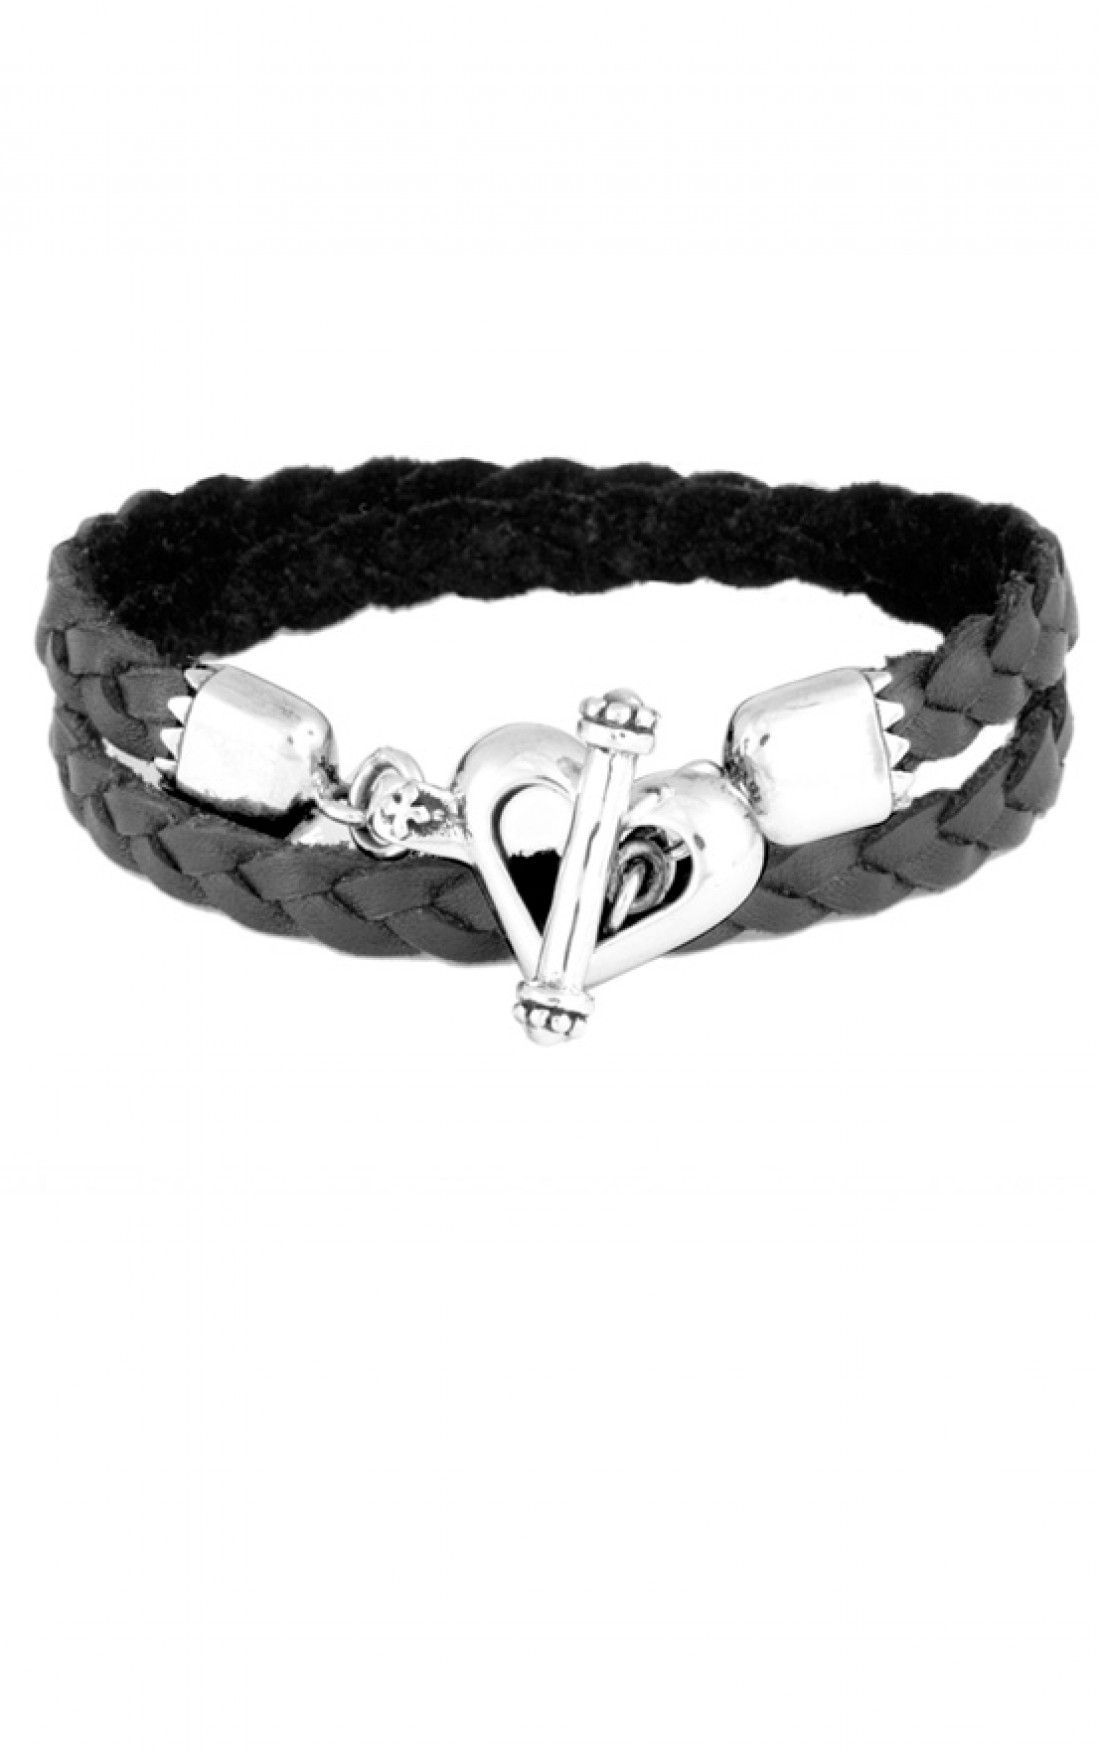 King Baby - Double Wrap Leather Bracelet with Heart Toggle Clasp (Q42-5165)